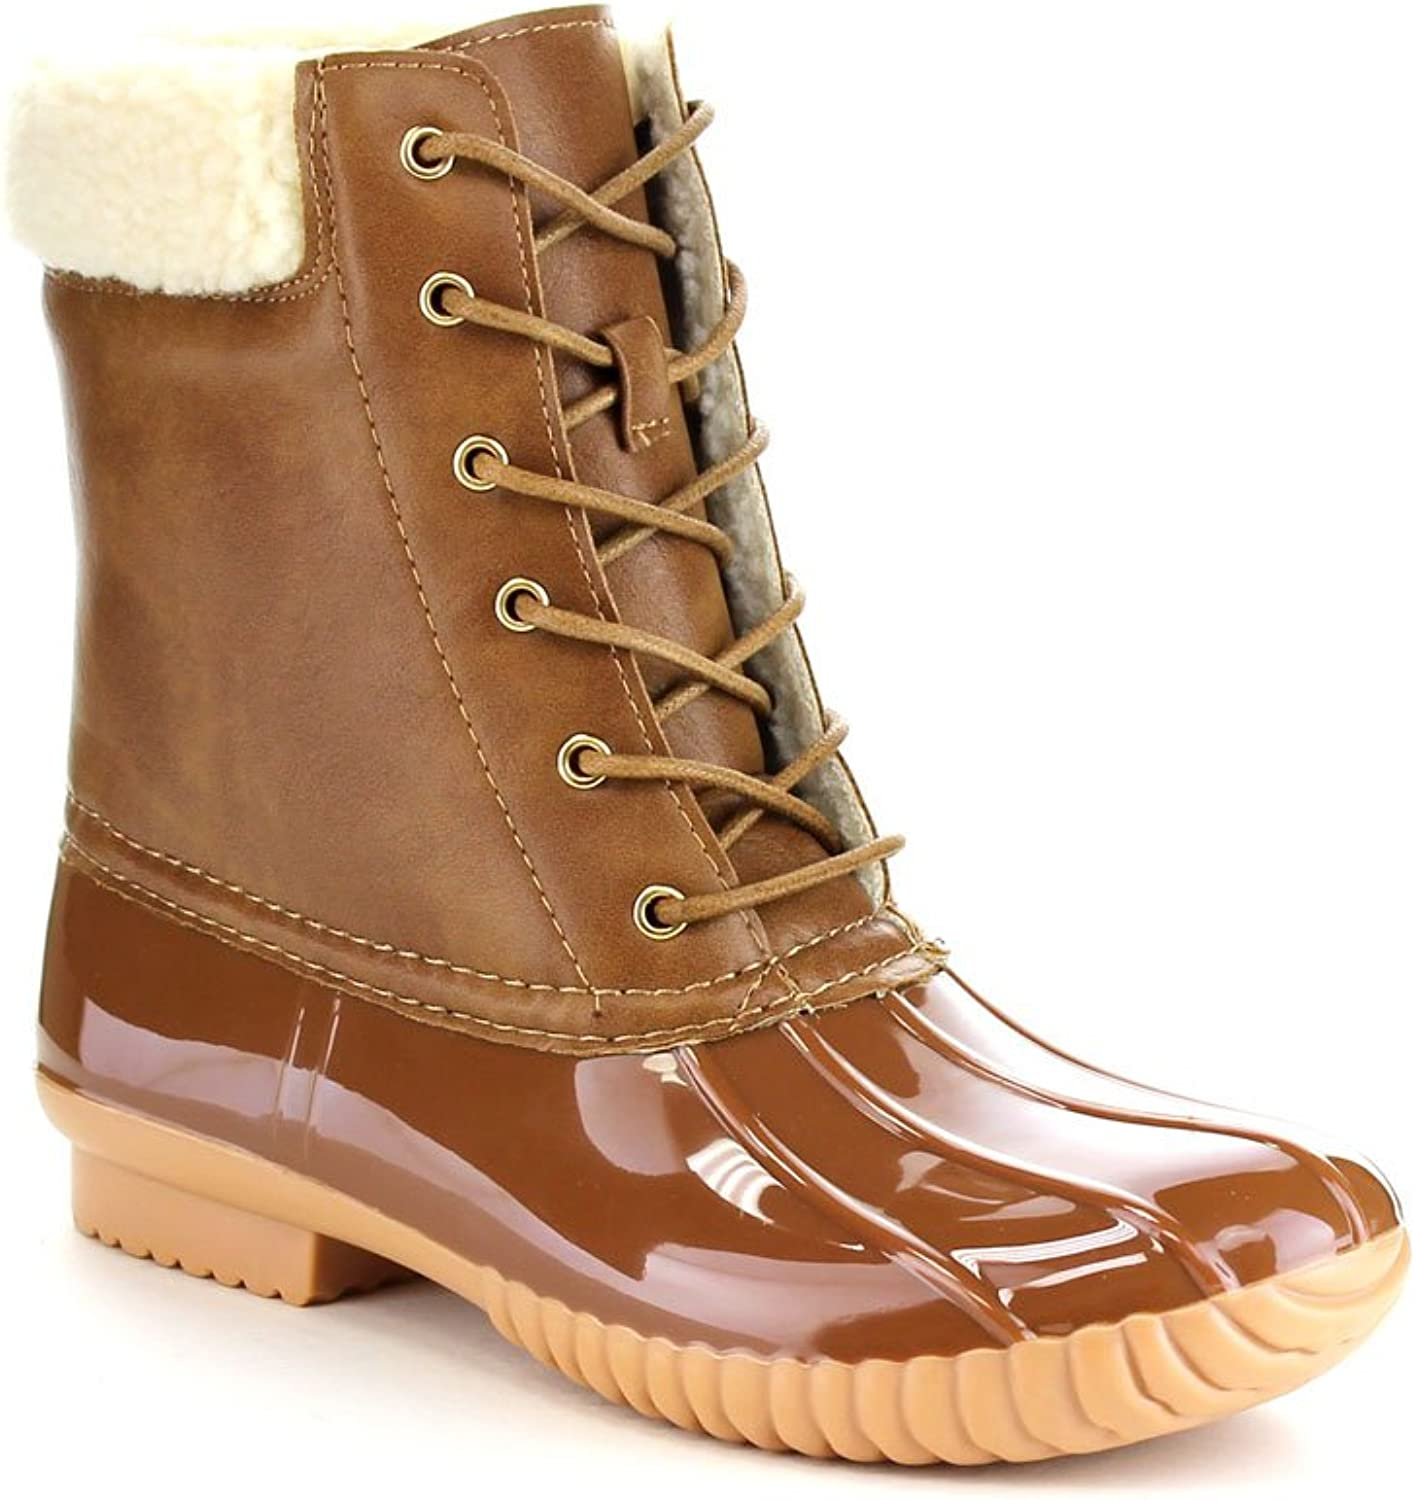 Forever Kyla-3 Women's Fashion Pull-On Faux Fur Waterproof Lace up Duck Boots,Tan,6